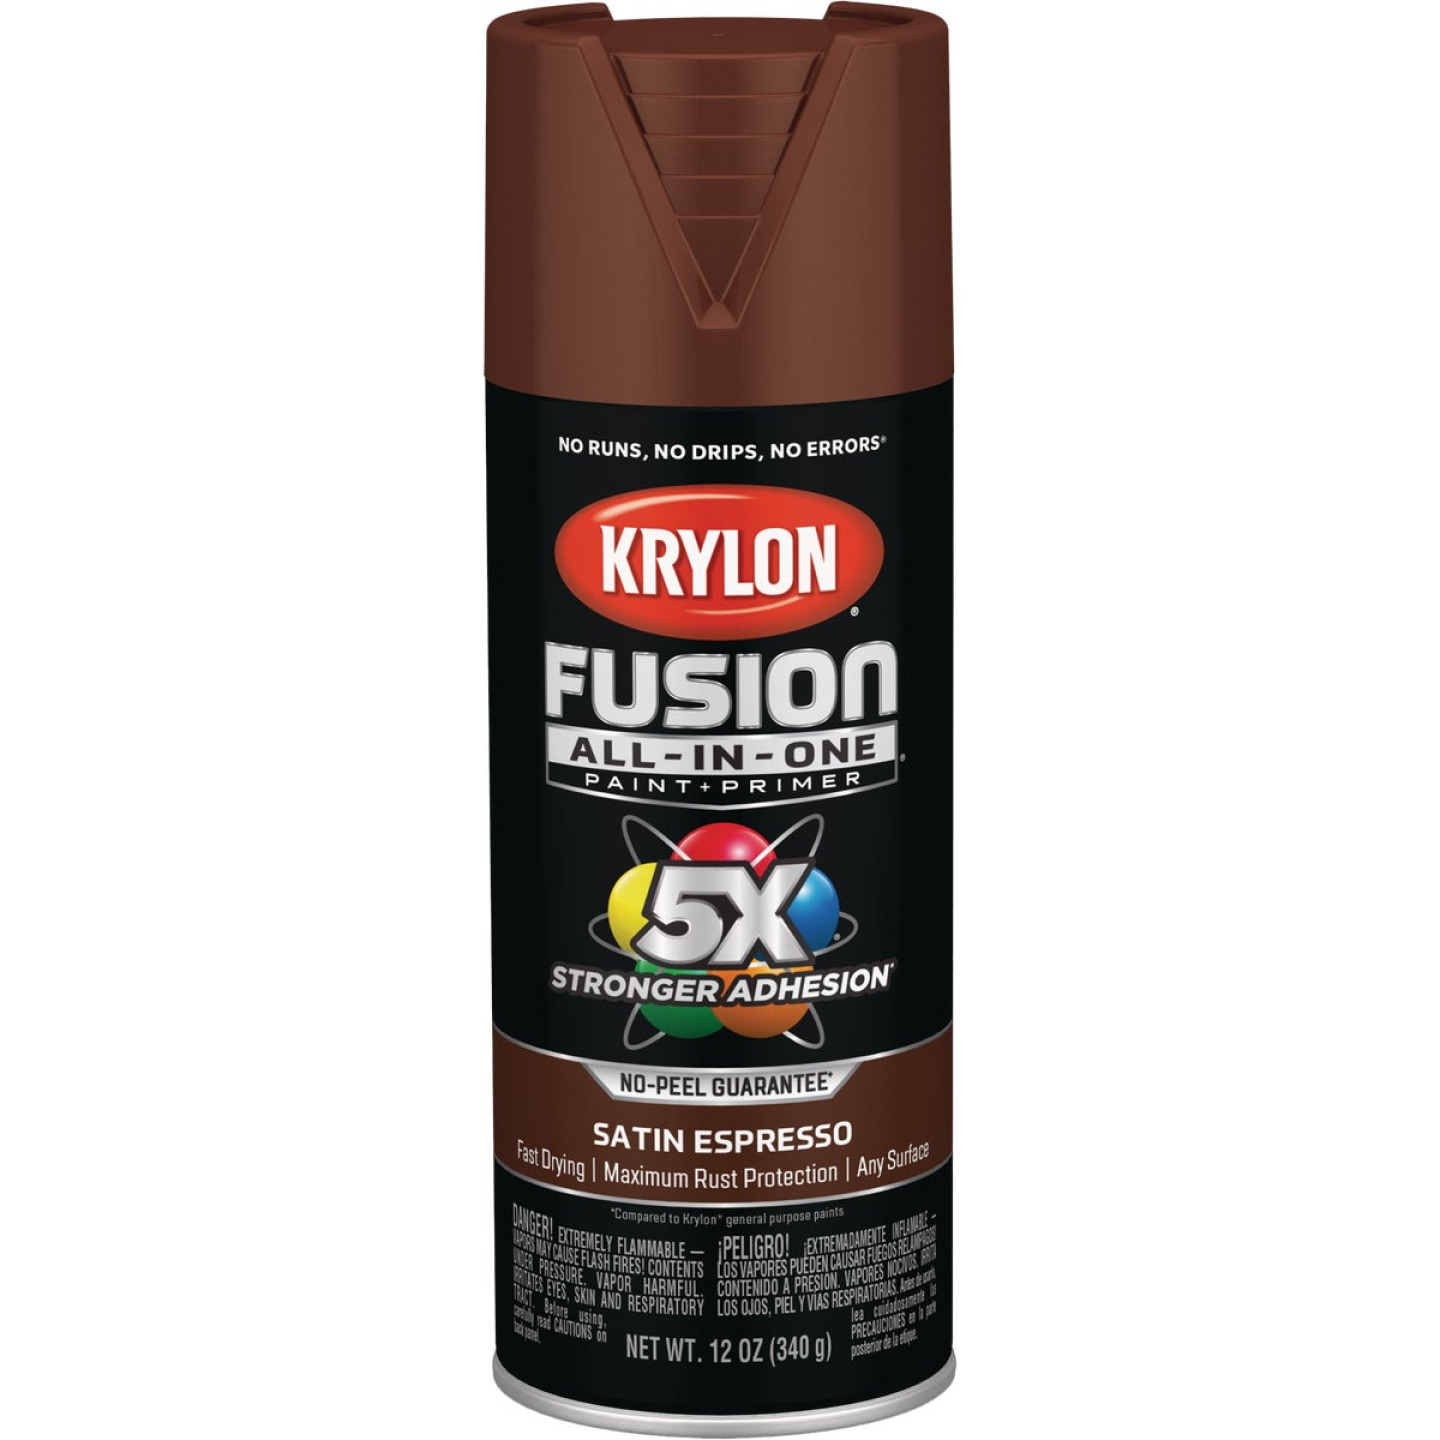 Krylon Fusion All-In-One Satin Spray Paint & Primer, Espresso Image 1